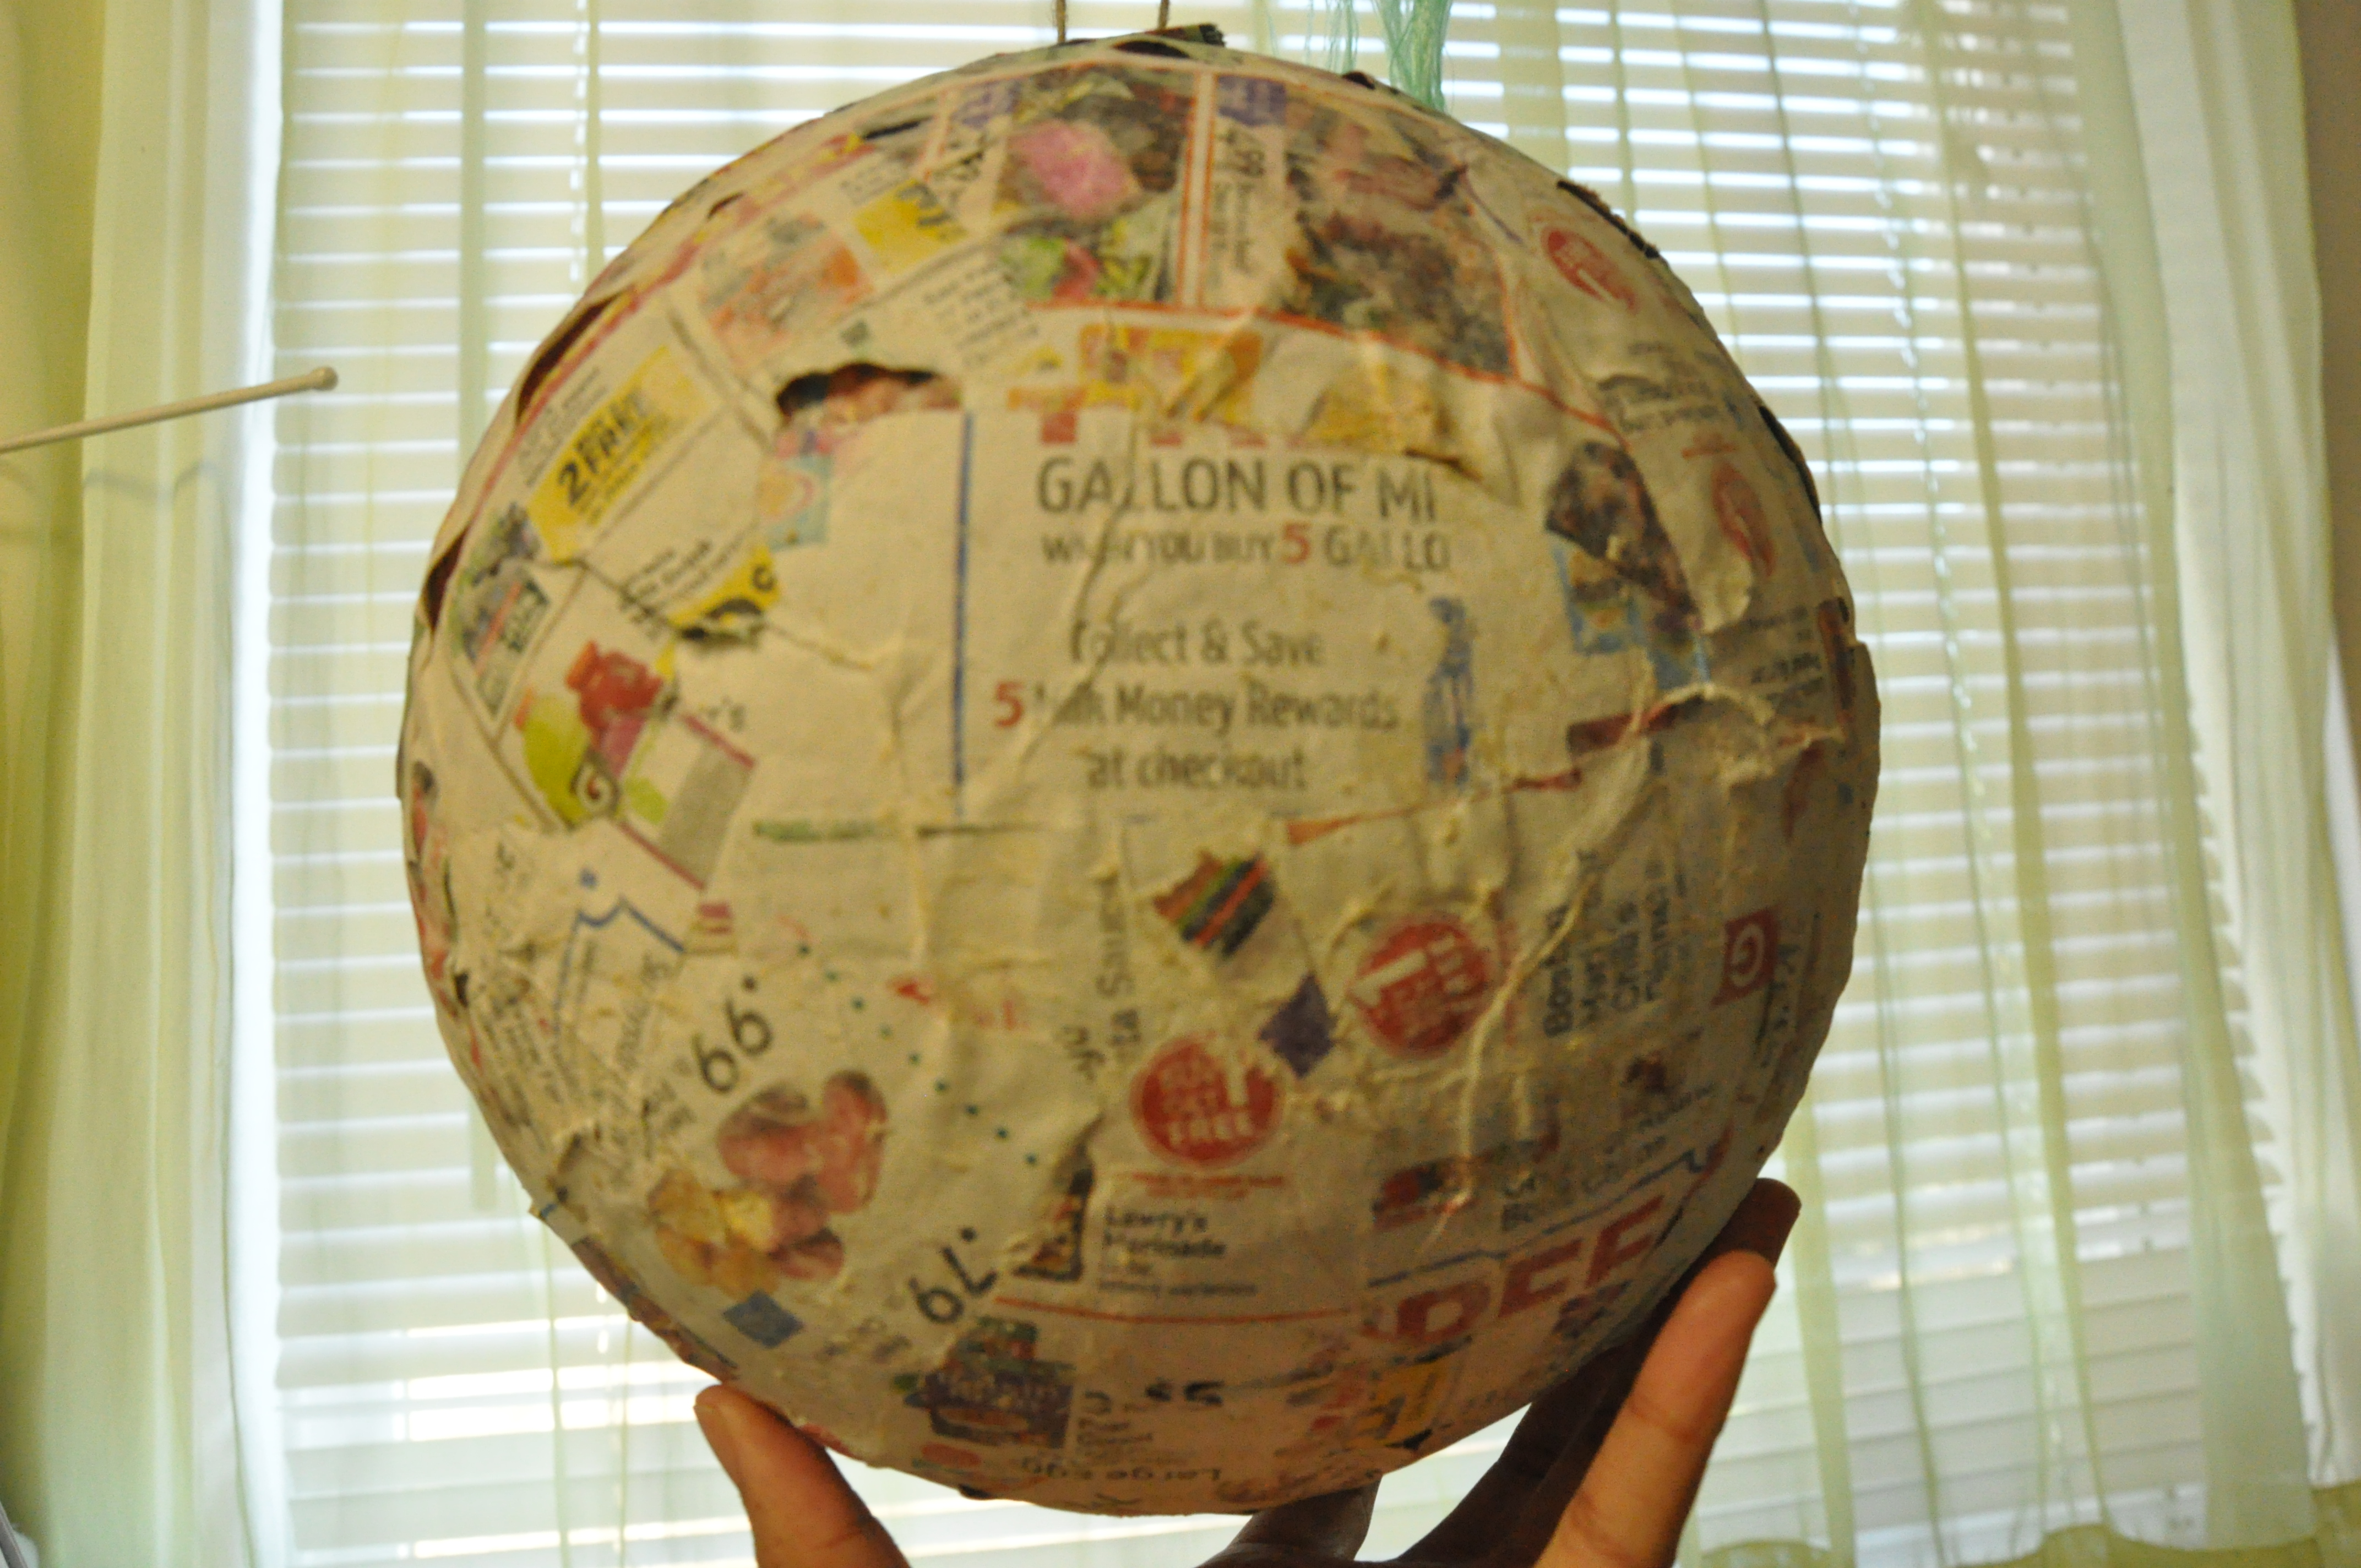 Soccer ball craft ideas - Bottom Of Balloon